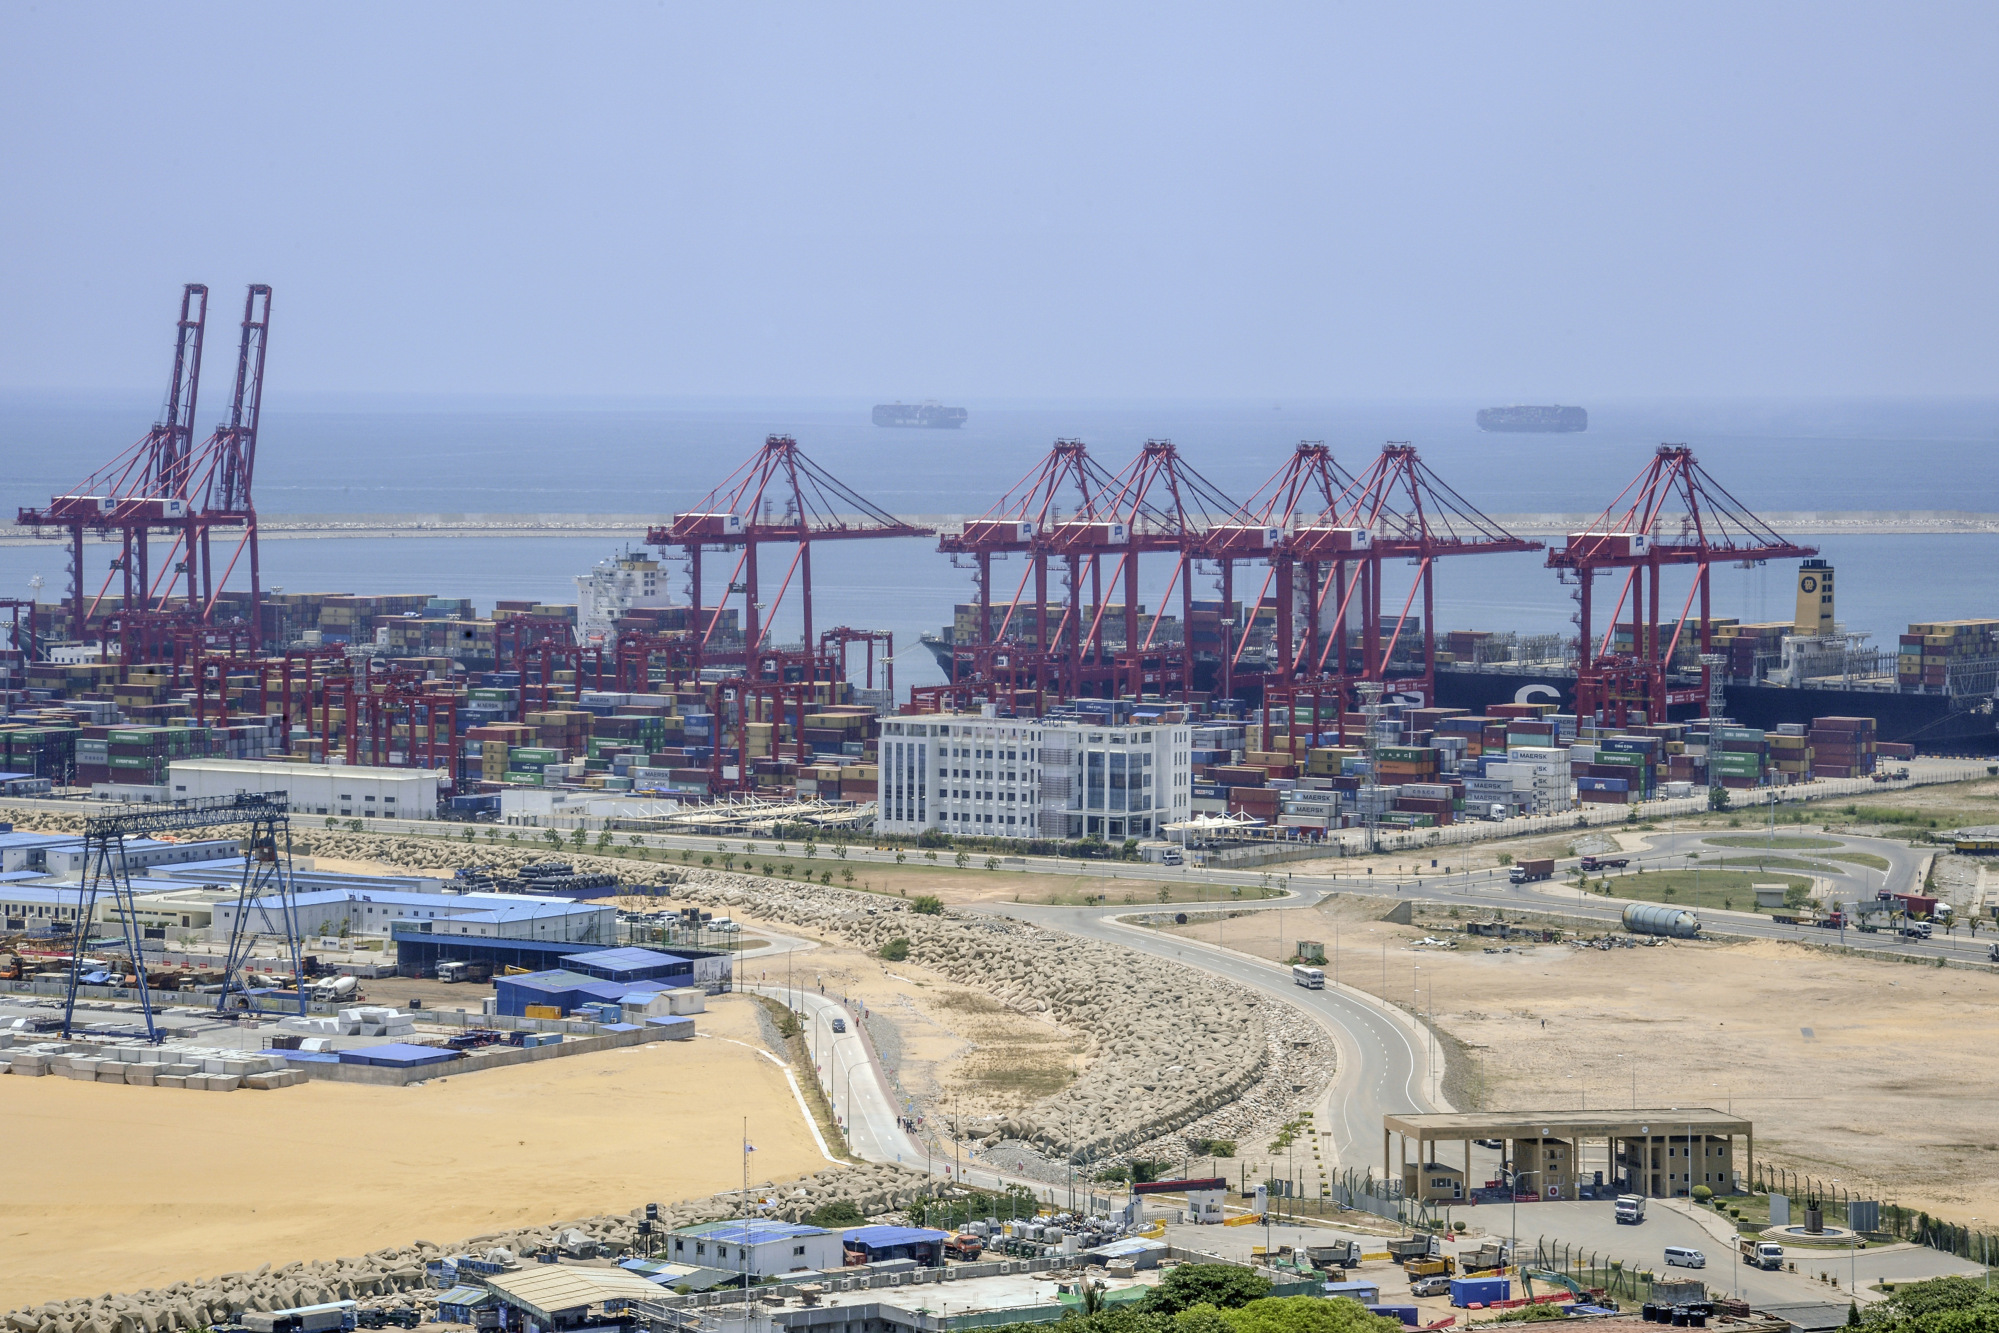 The site of Colombo Port City in Colombo, Sri Lanka.